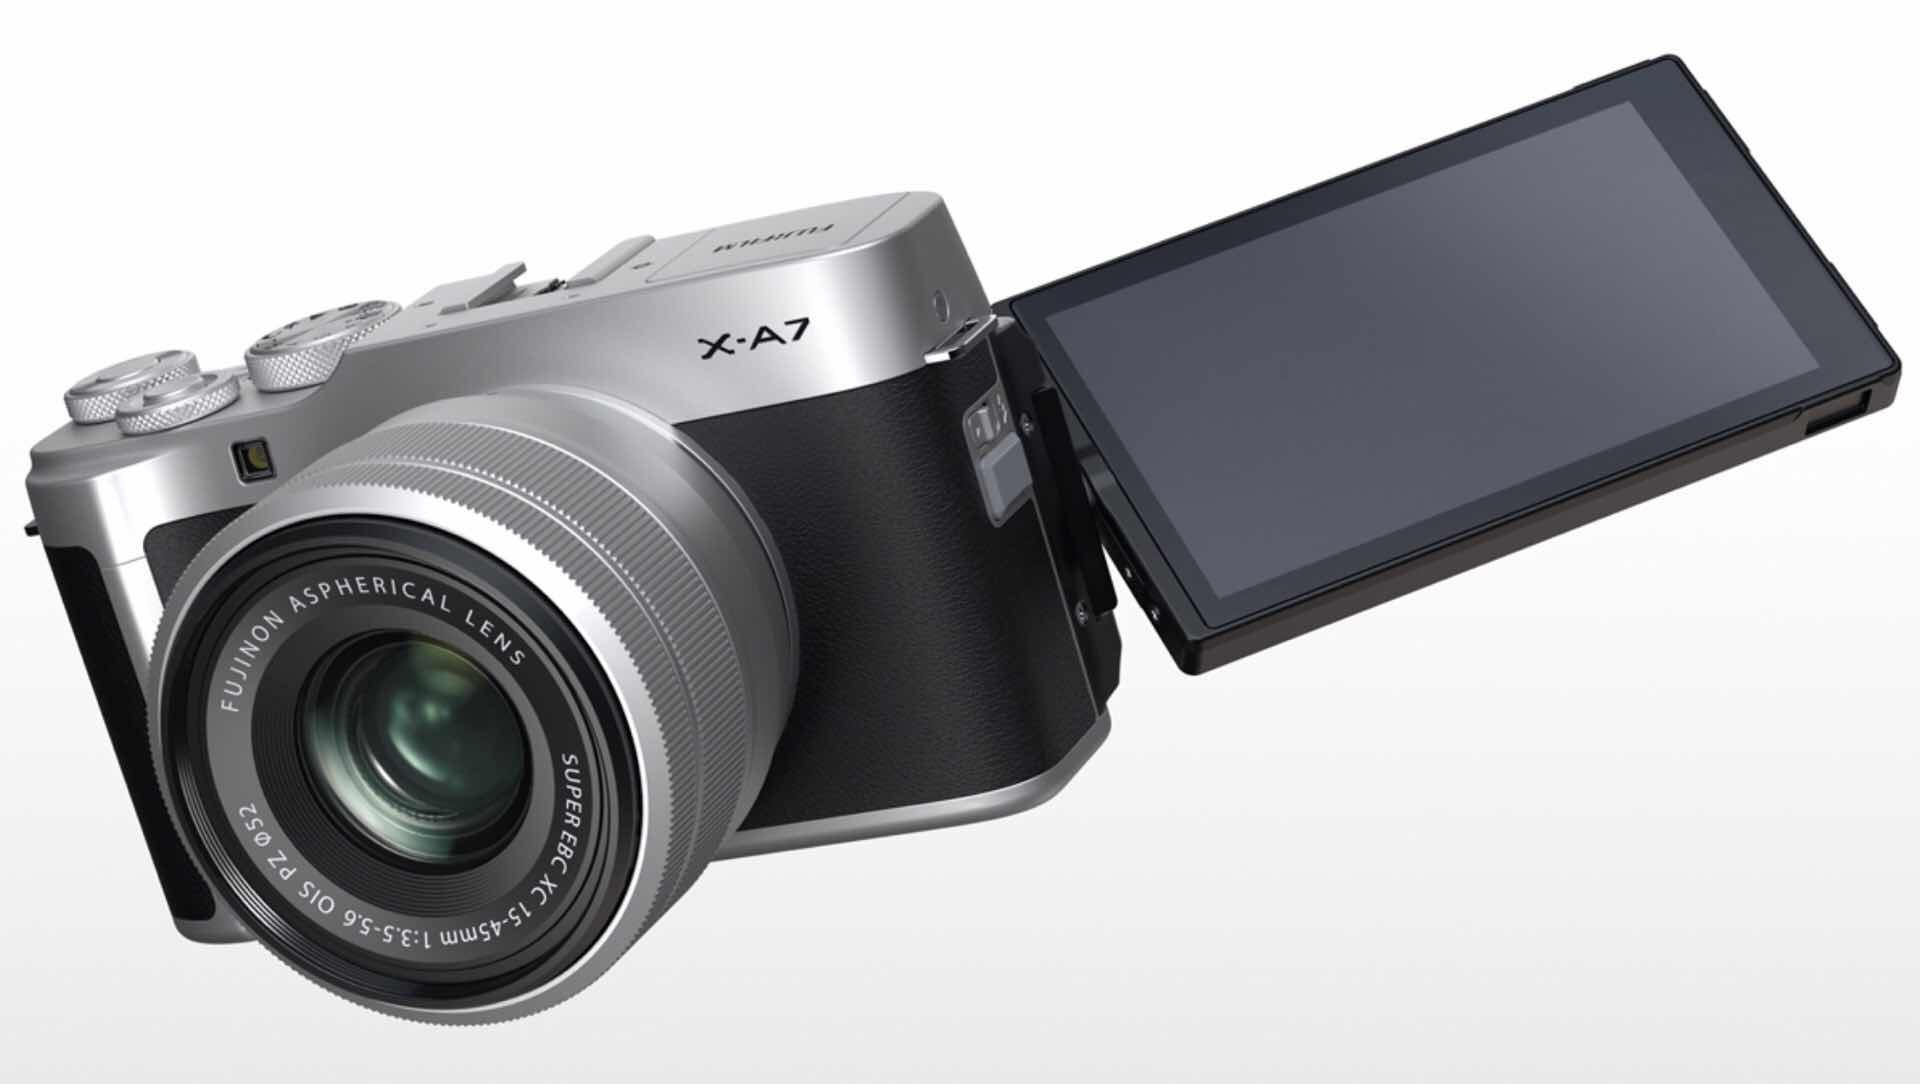 fujifilm-x-a7-mirrorless-digital-camera-display